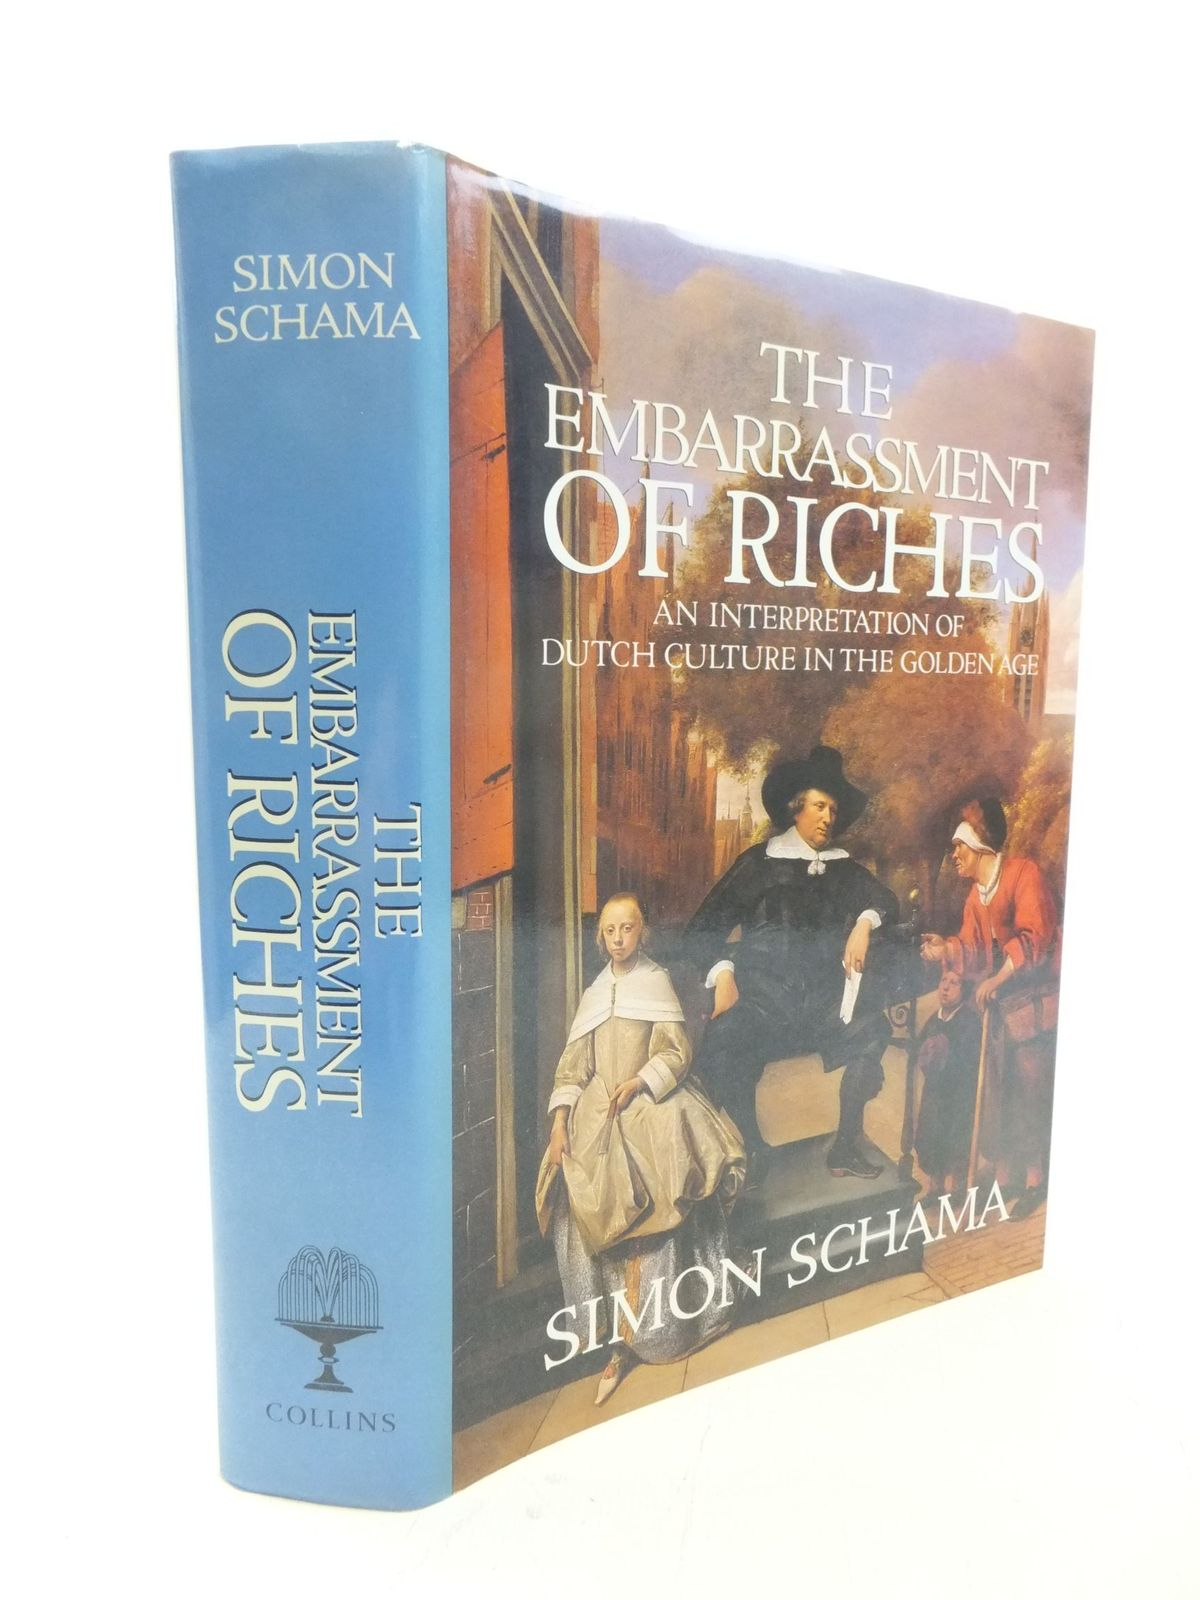 Photo of THE EMBARRASSMENT OF RICHES AN INTERPRETATION OF DUTCH CULTURE IN THE GOLDEN AGE written by Schama, Simon published by Collins (STOCK CODE: 2114732)  for sale by Stella & Rose's Books